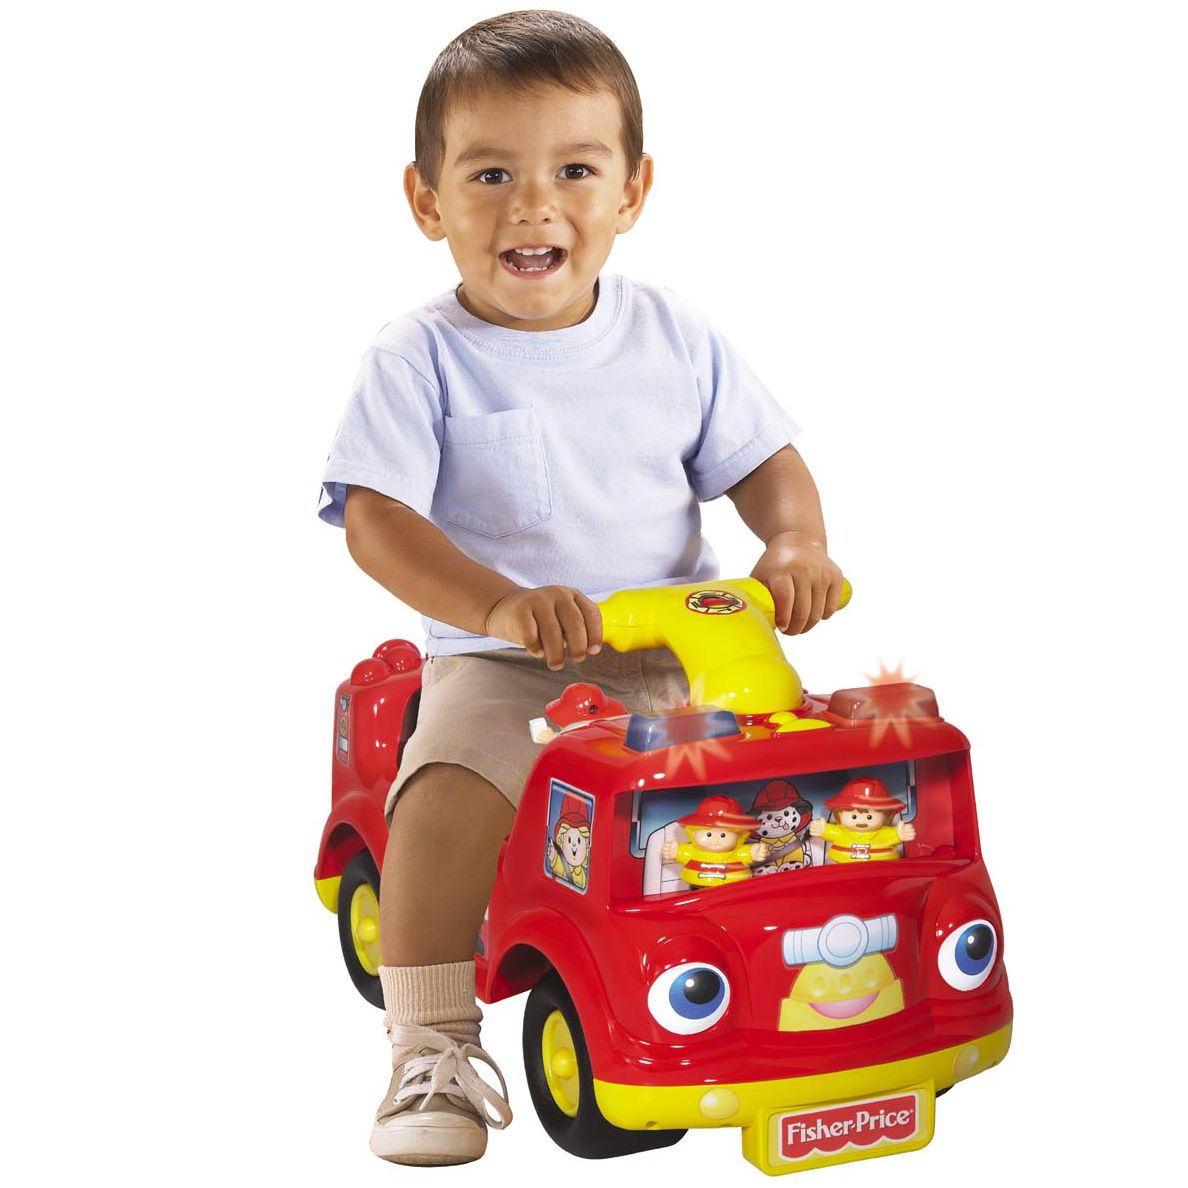 Fisher-Price Fire Engine Ride-On